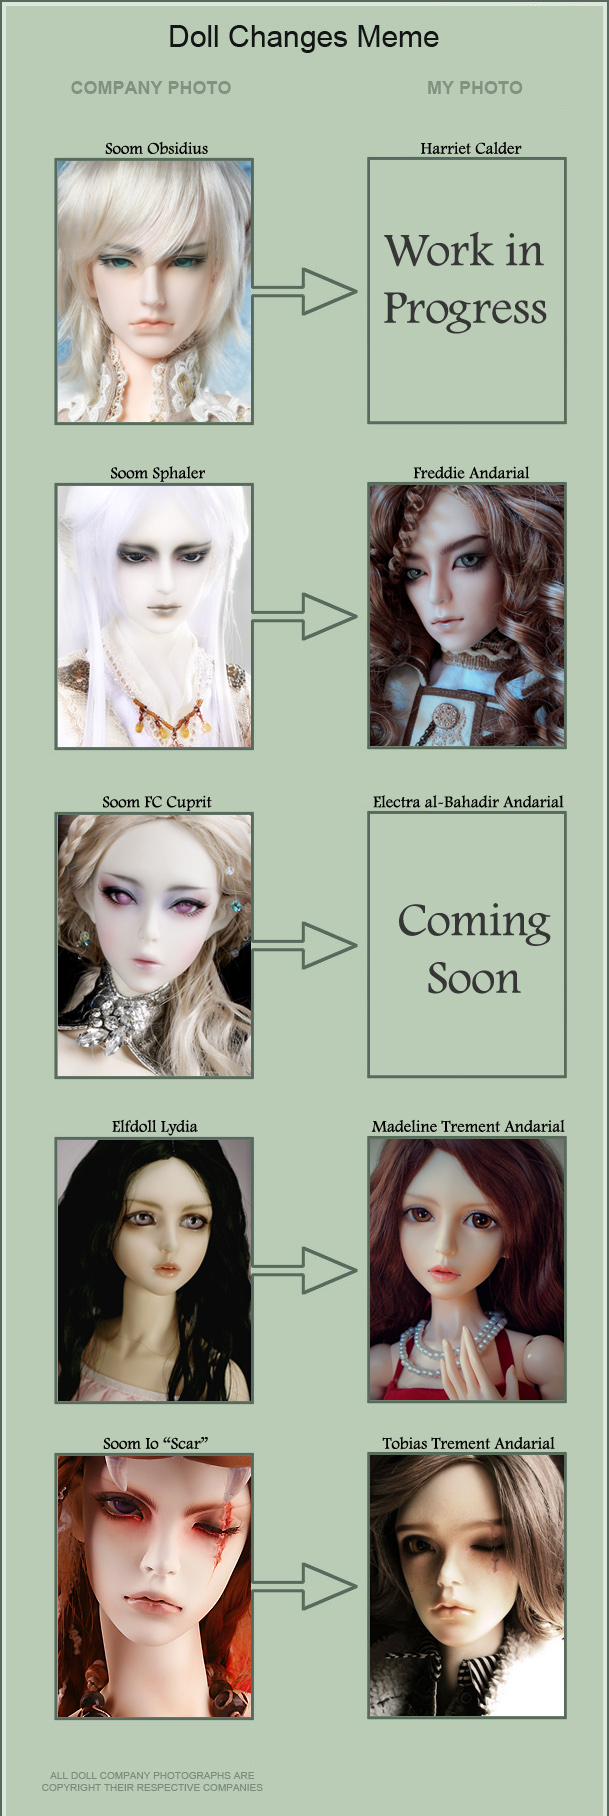 Doll Changes Meme - The Usurper's Son by Echoes-of-Elaris